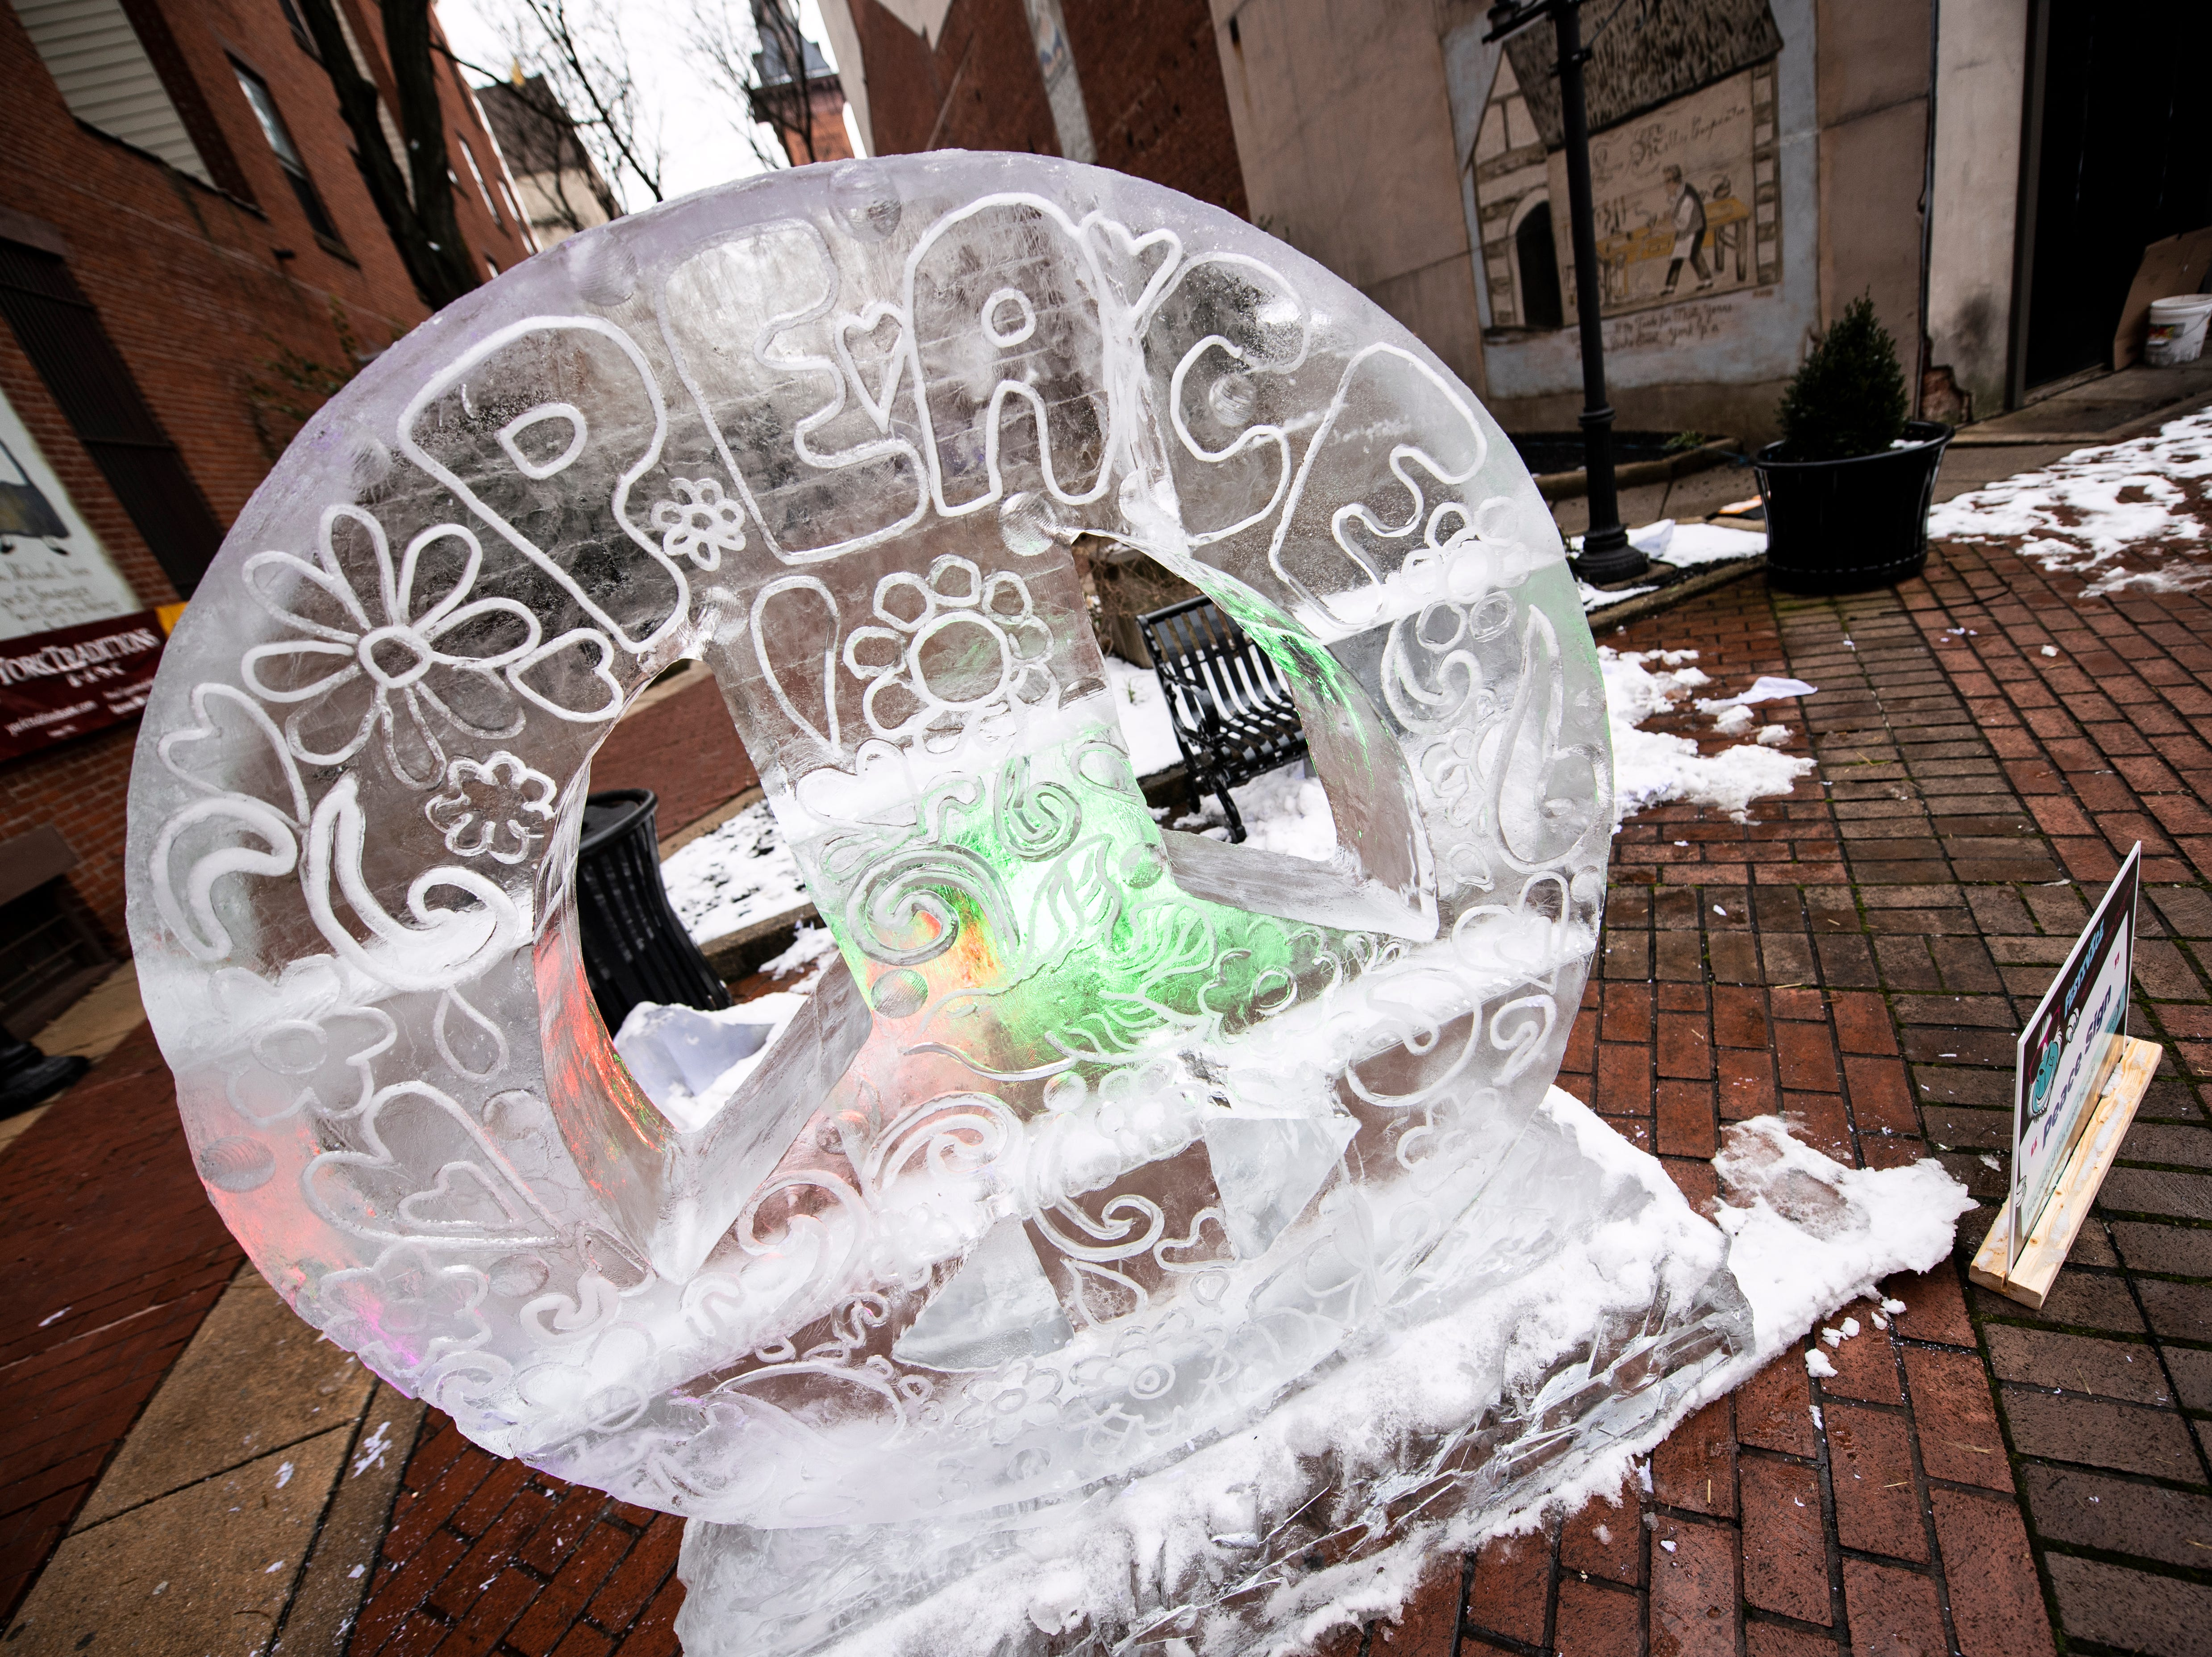 The 'peace sign' sculpture, decked out with lights, is one of more than a dozen ice sculptures in and around Cherry Lane, Friday, Jan. 18, 2019. The FestivICE ice festival has interactive ice sculptures, an ice slide and more. The three-day event ends Saturday.